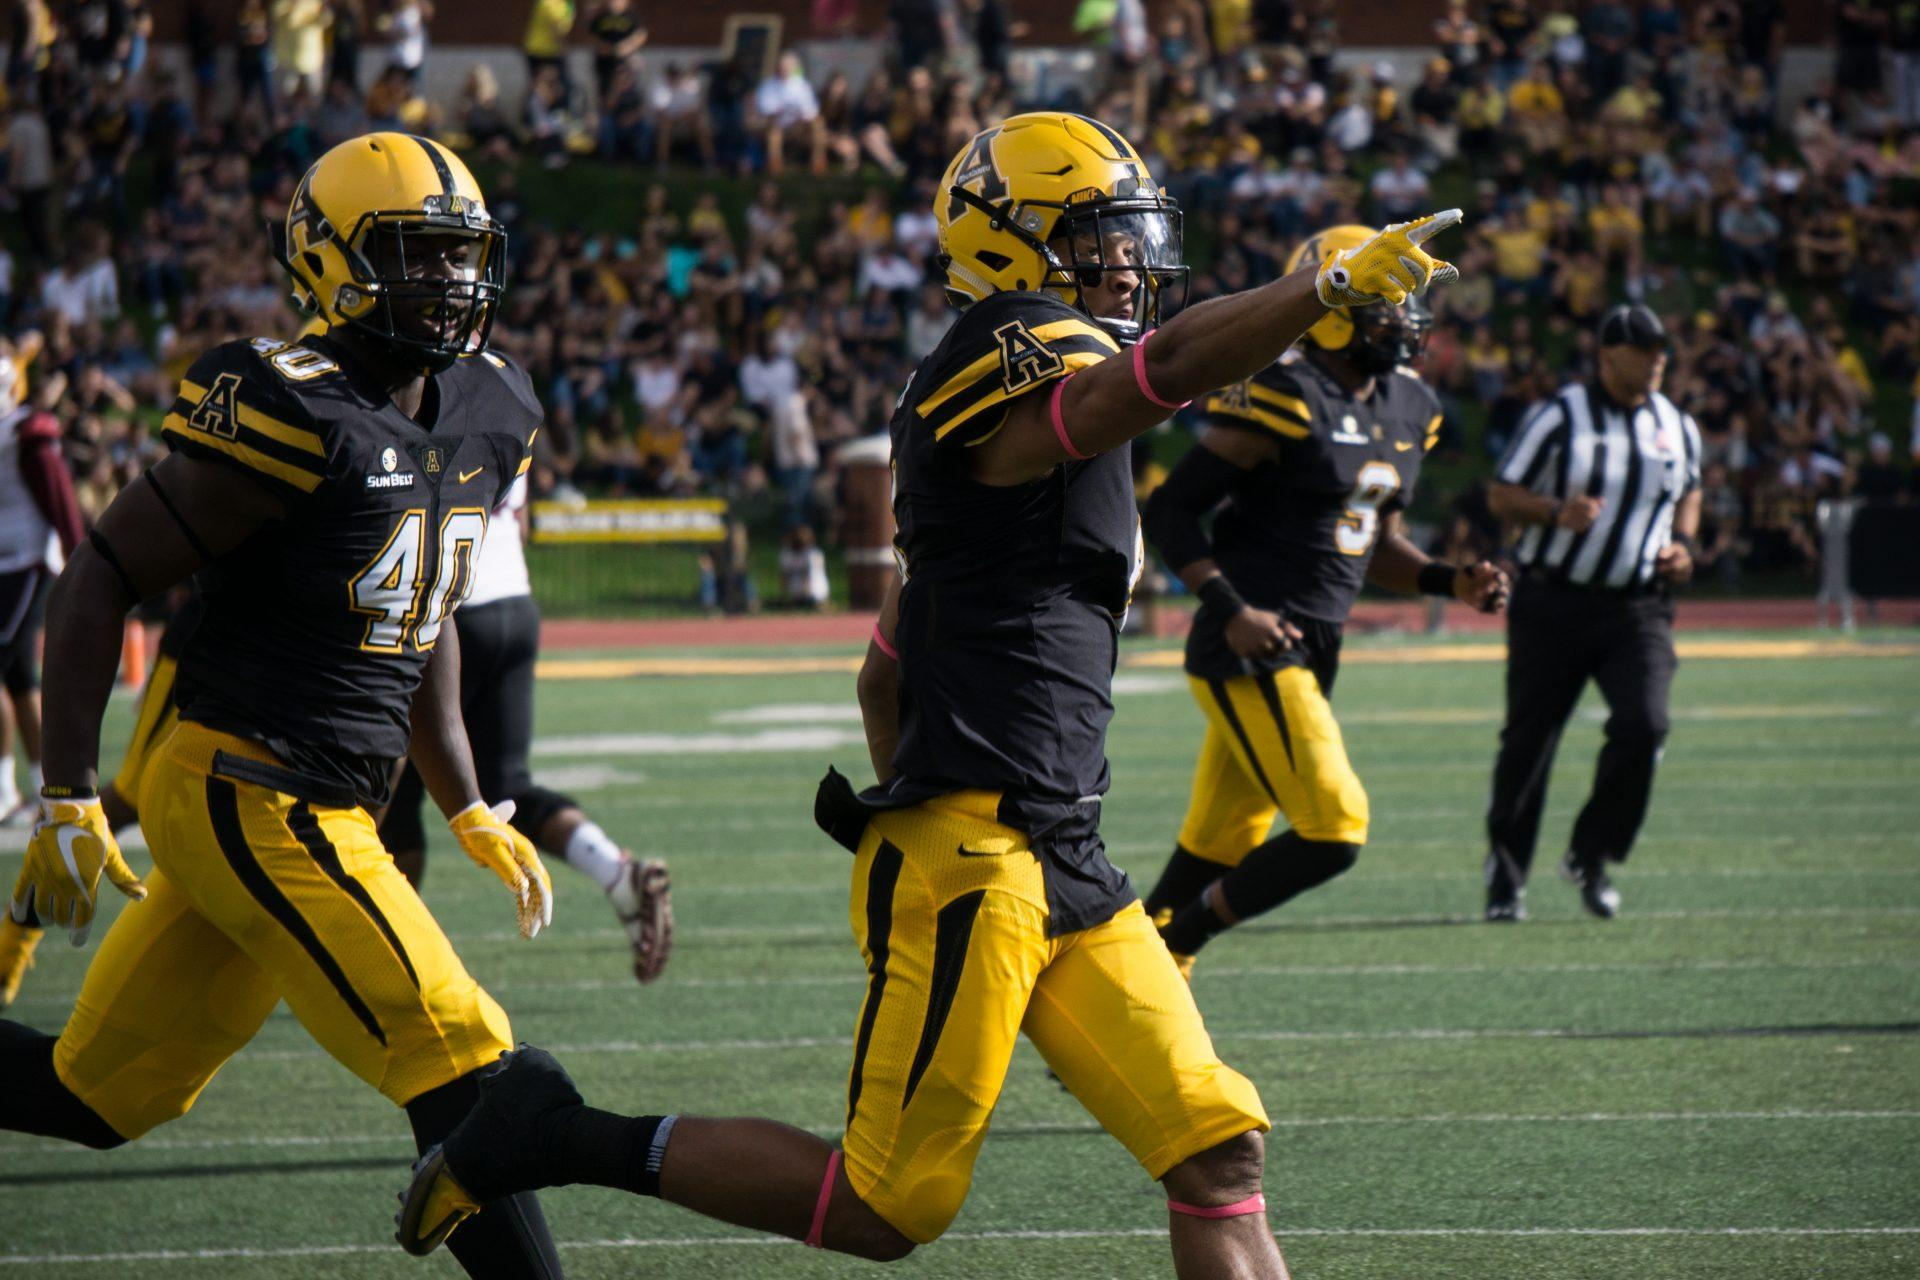 Game Day Grades: App State vs. New Mexico State